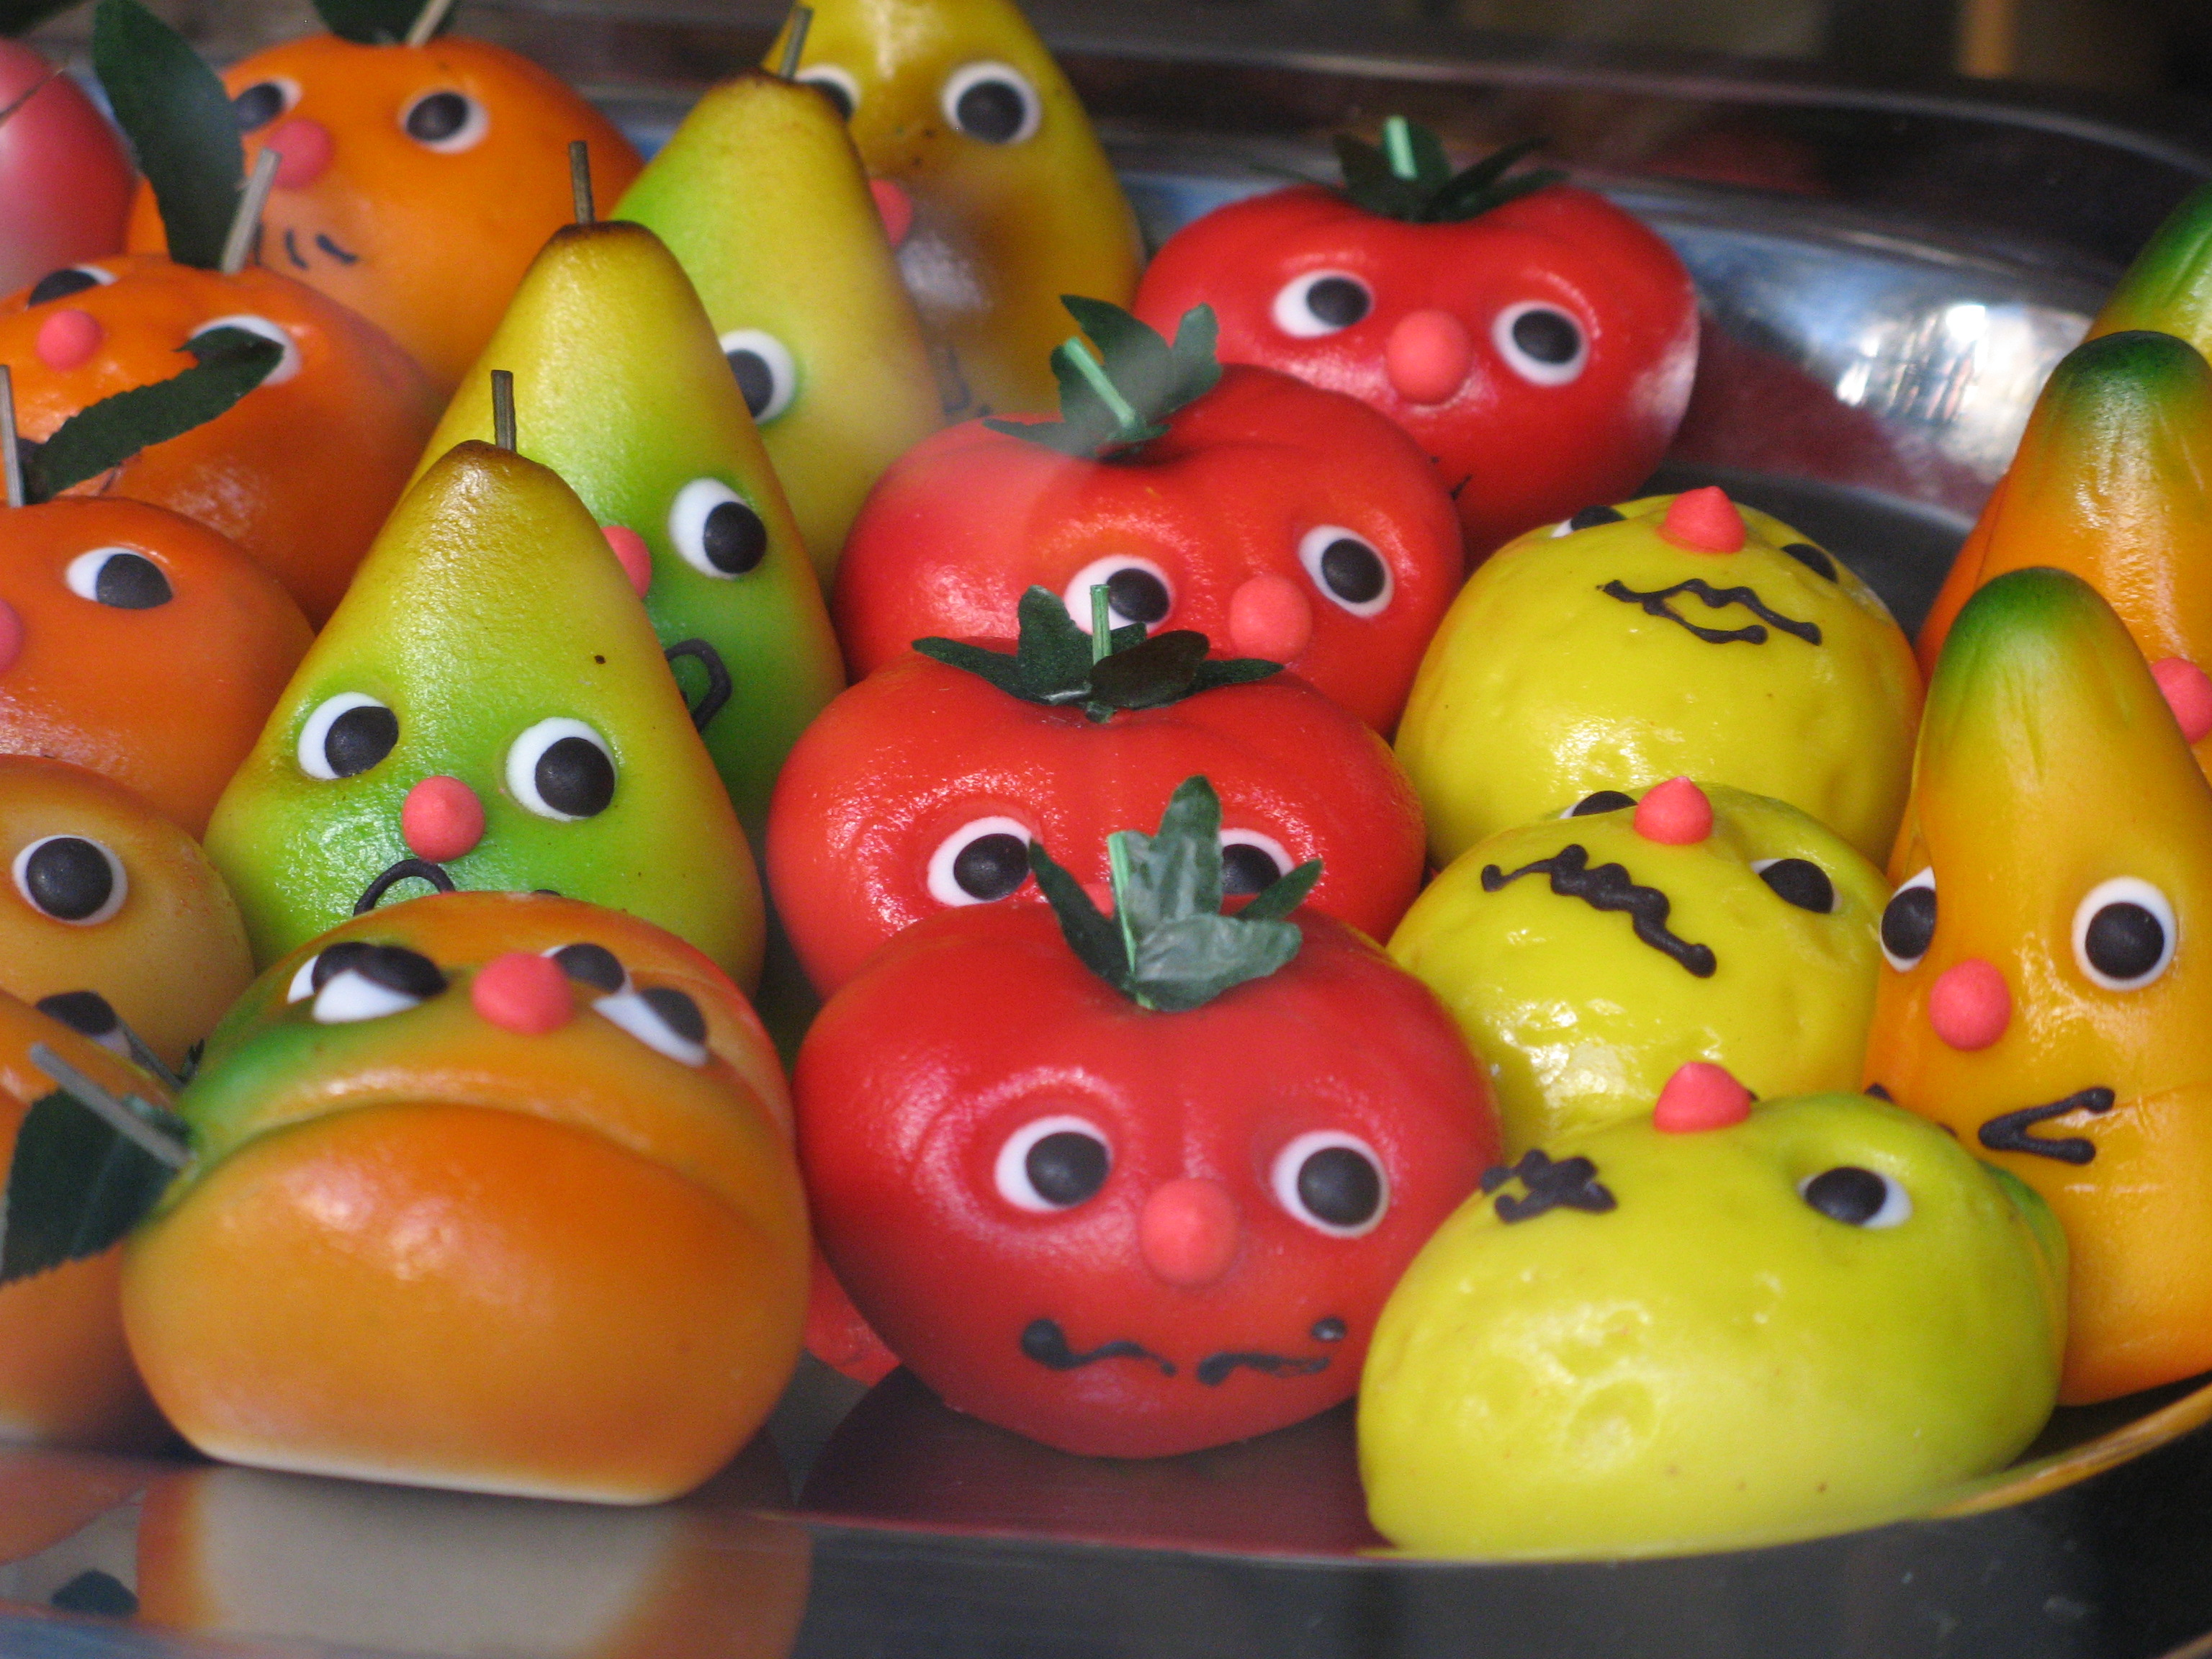 File:Marzipan fruit with nervous expression.jpg - Wikimedia Commons